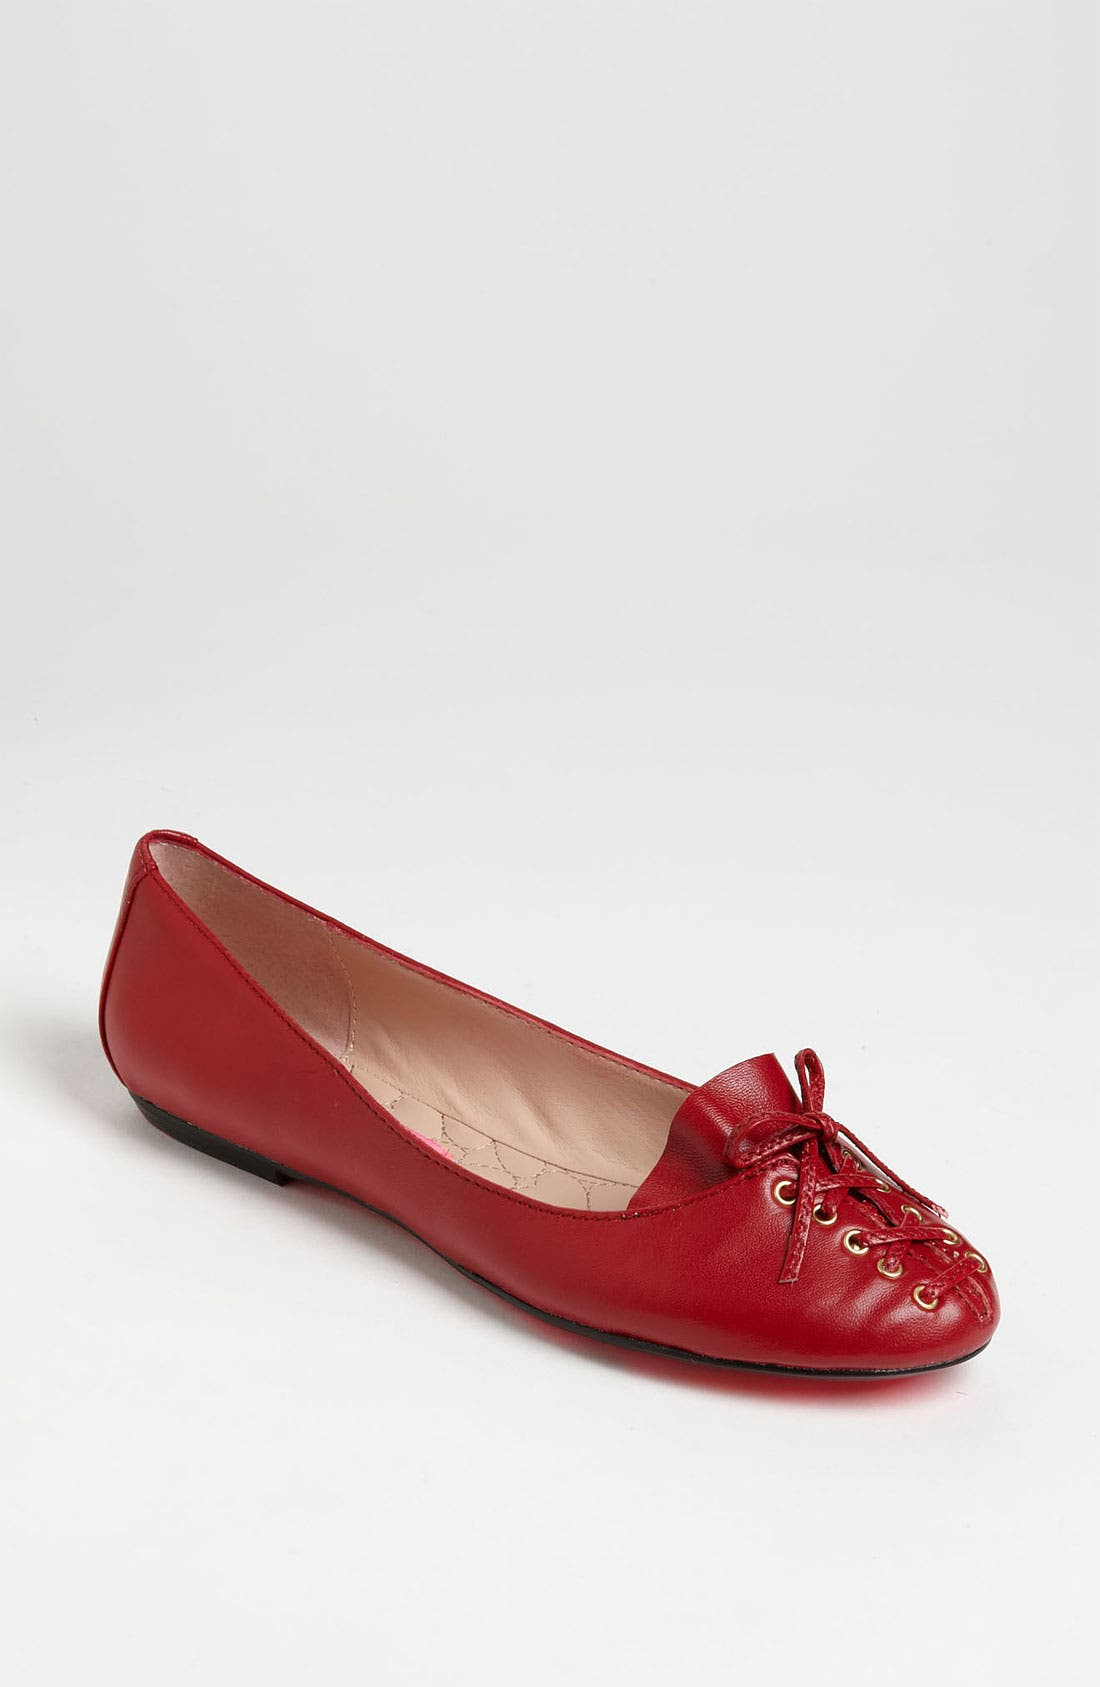 Alternate Image 1 Selected - Betsey Johnson 'Bevrly' Flat